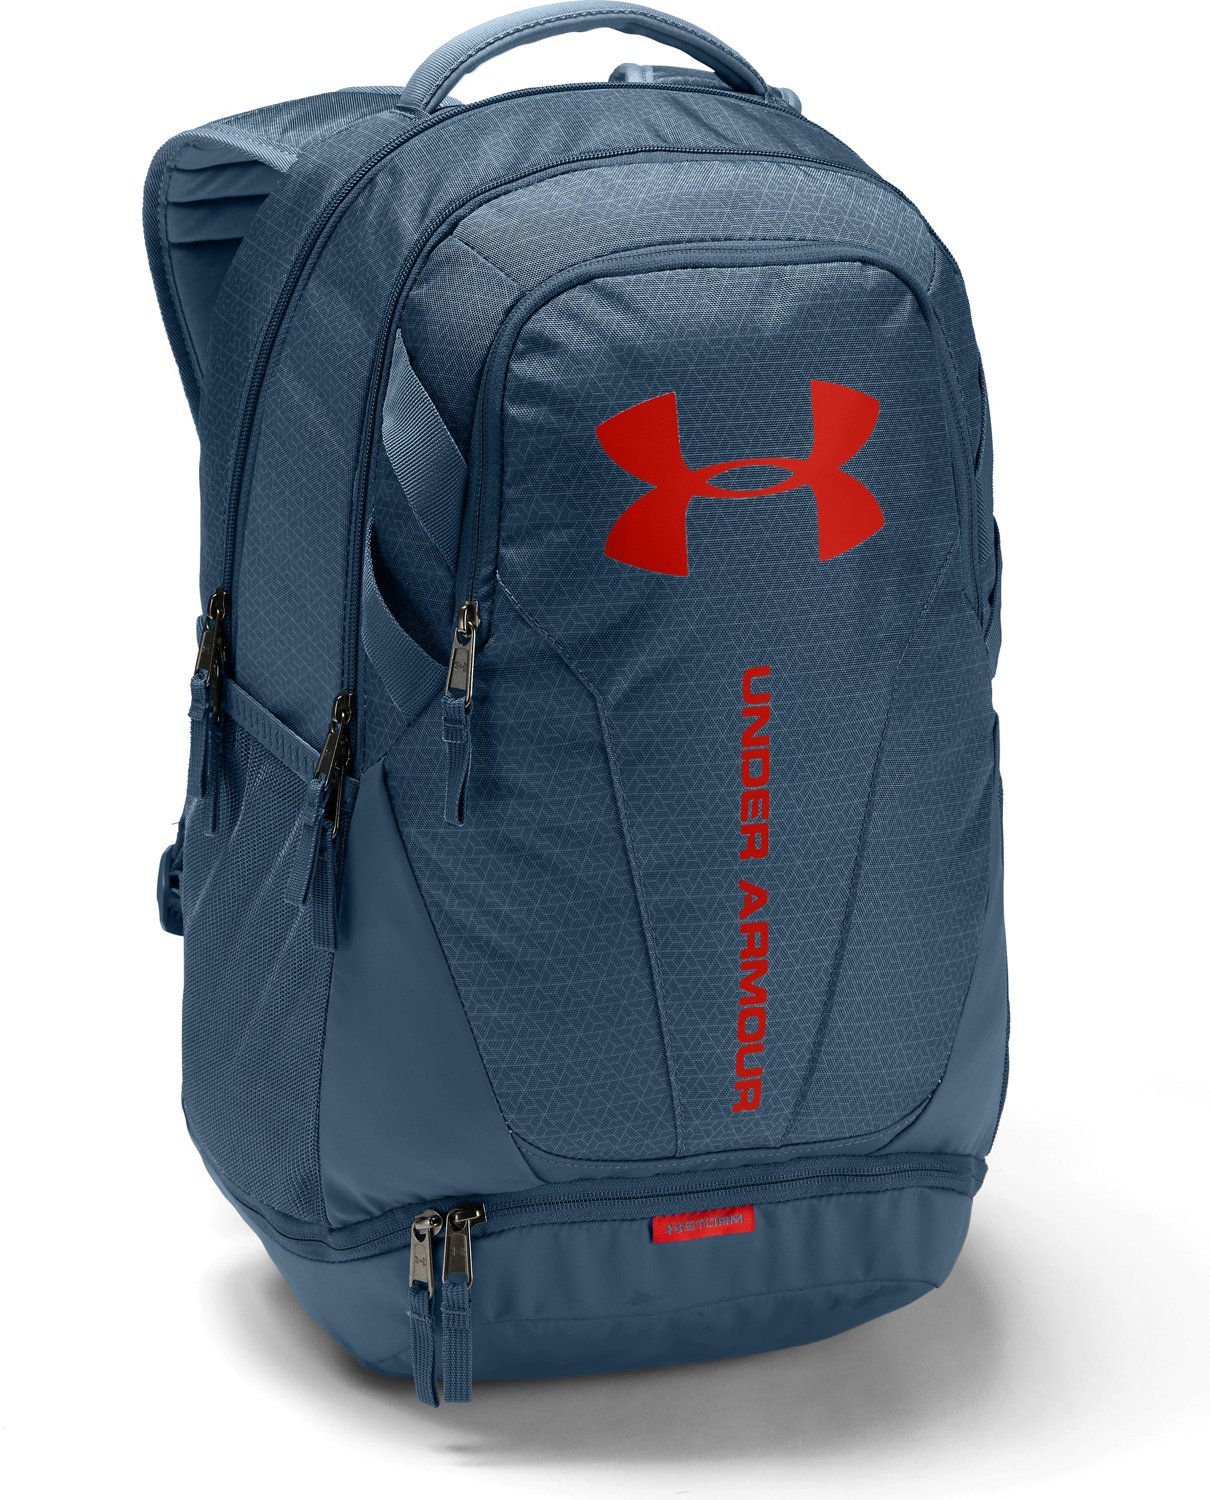 dcae5a589e Display product reviews for Under Armour Hustle II Backpack